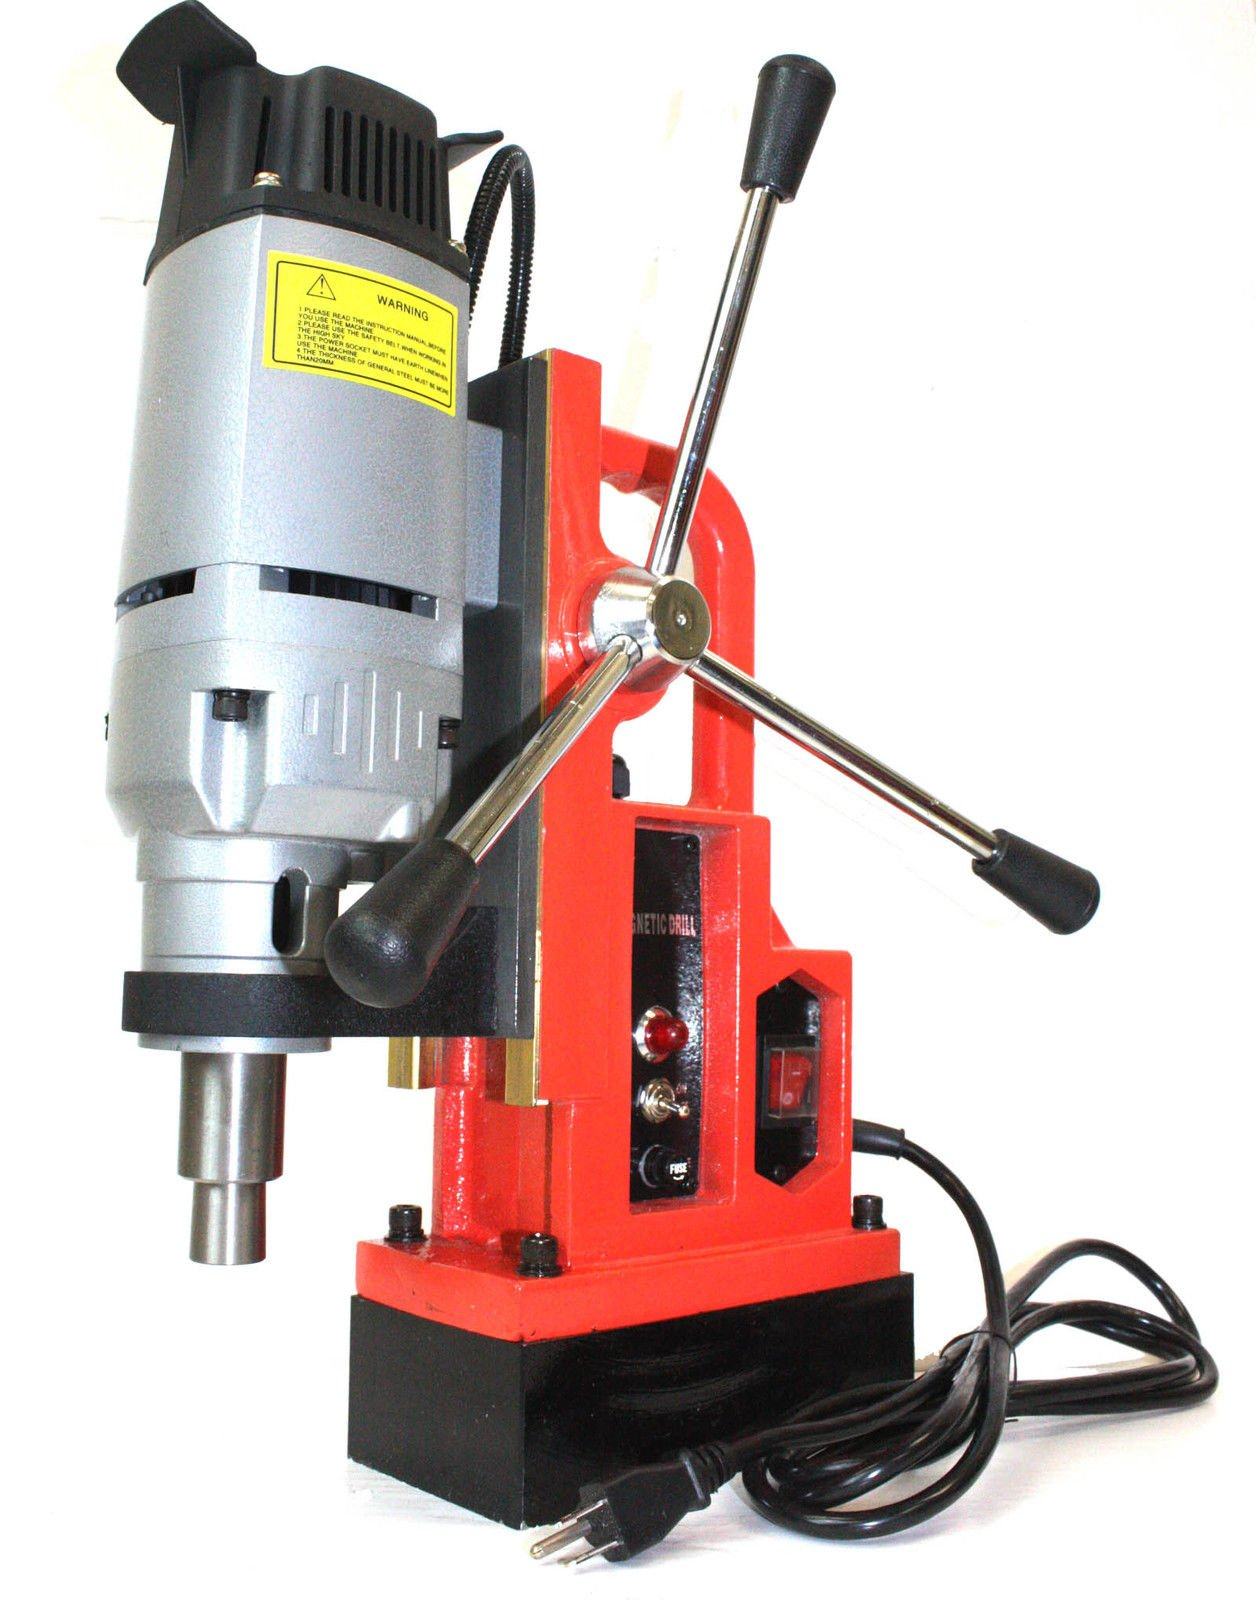 1350W Magnetic Drill Press 1'' Boring & 3372 LBS Magnet Force by wang tong shop